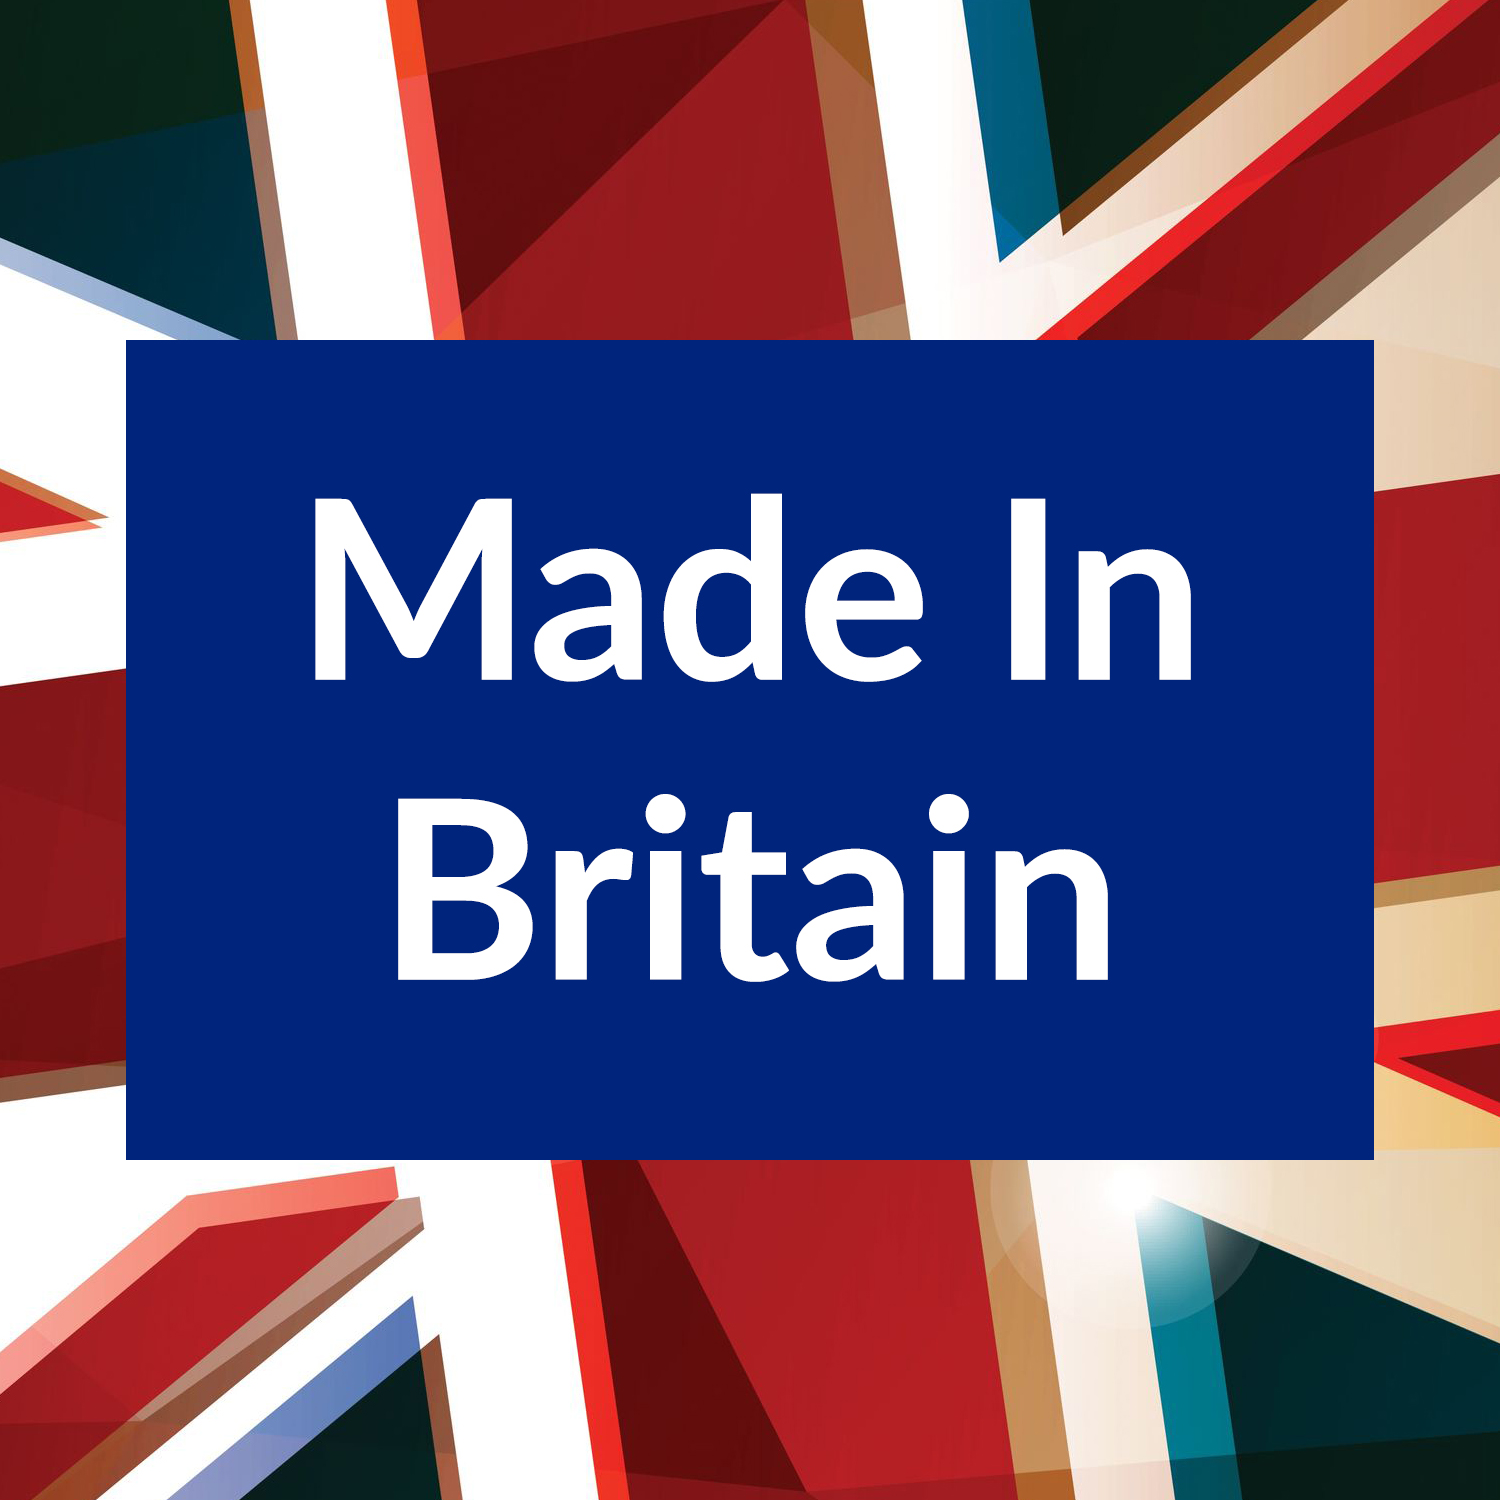 Made in Britain: We support British businesses and manufacturers